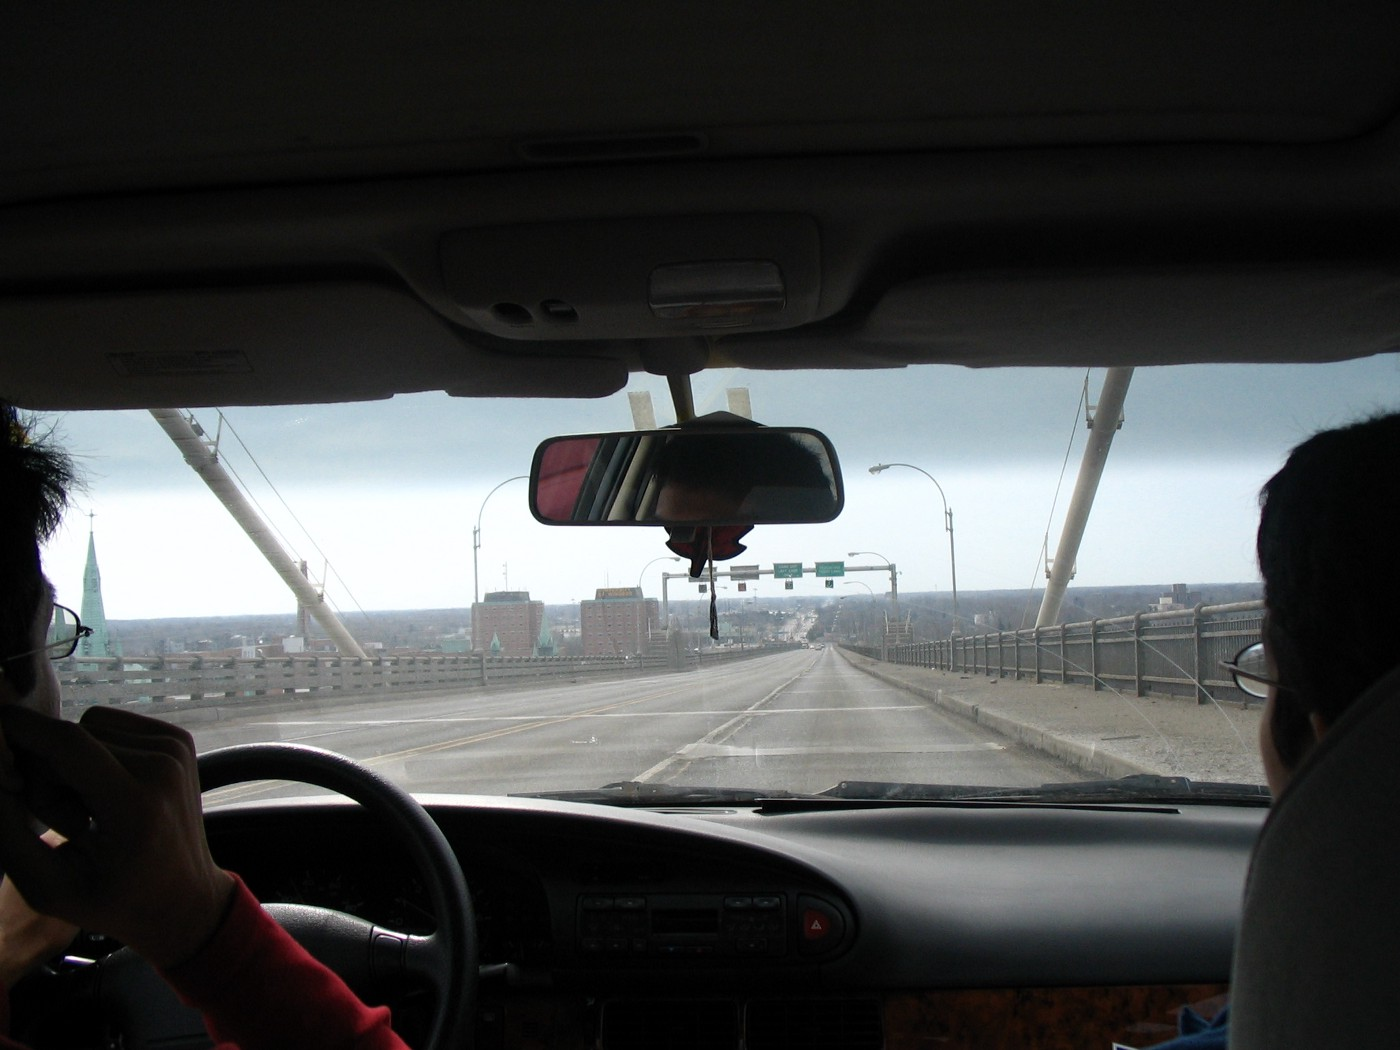 Car interior, looking out onto a bridge and cityscape